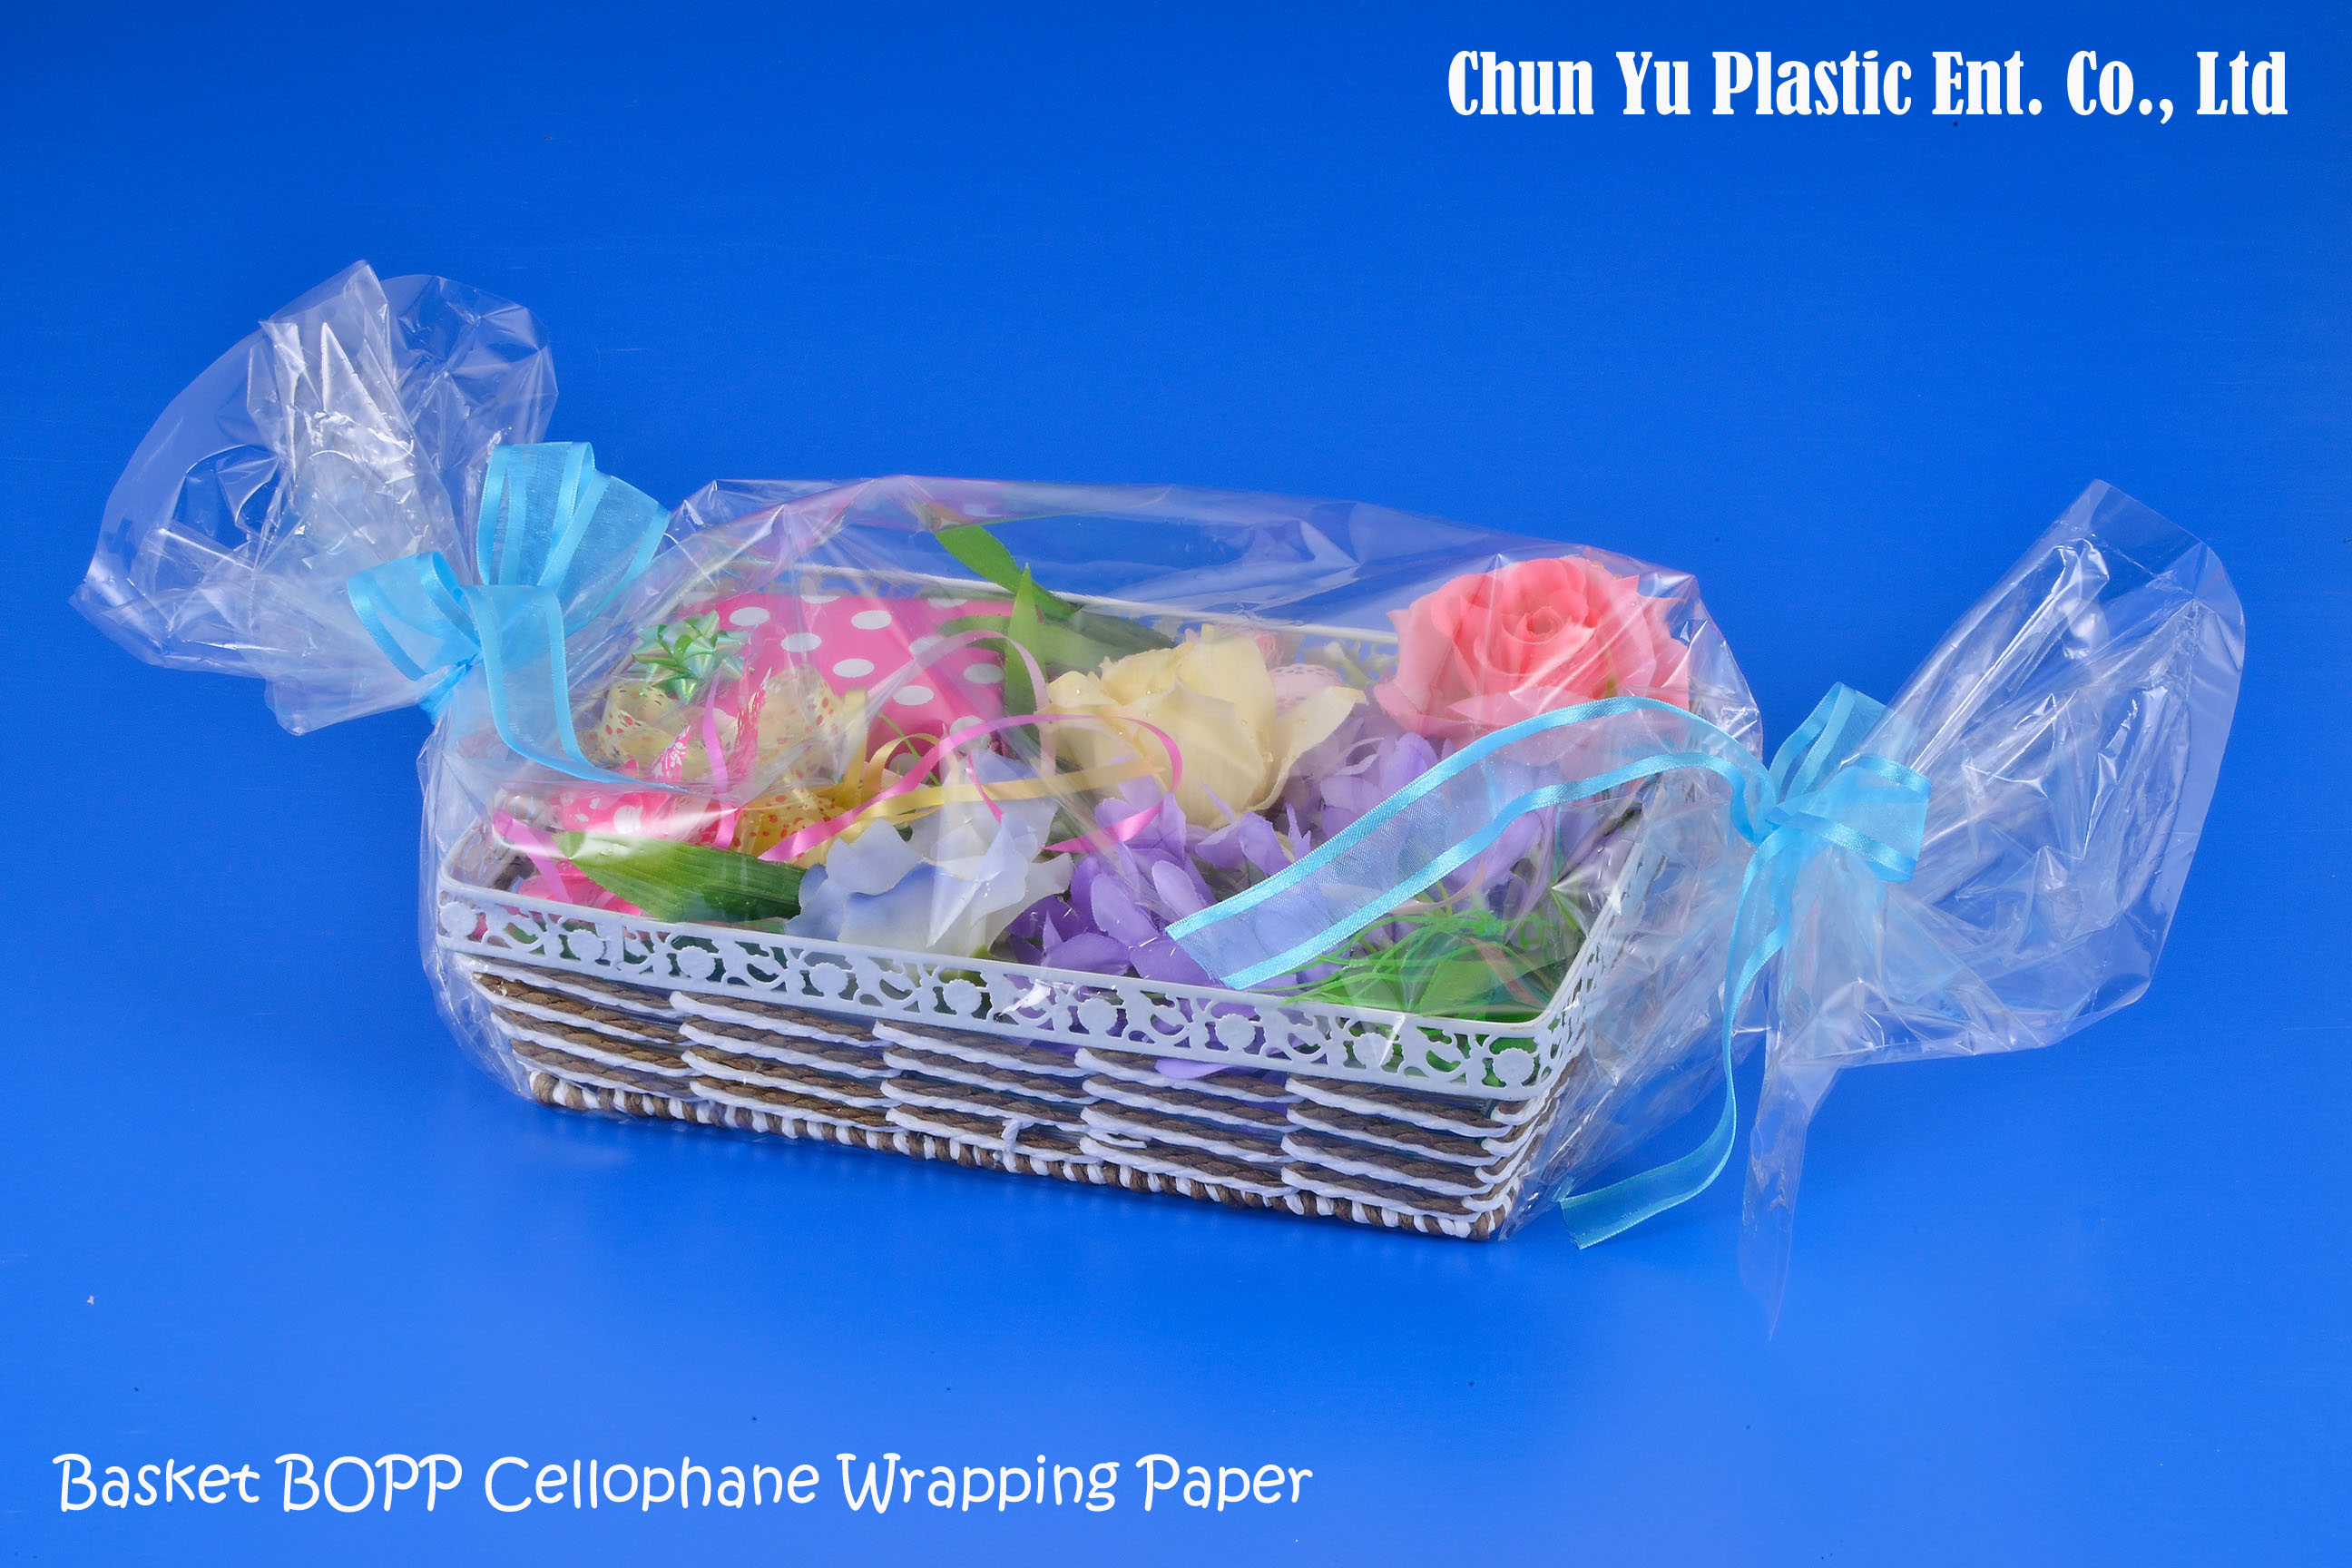 bopp cellophane wrapping paper manufacturing chun yu